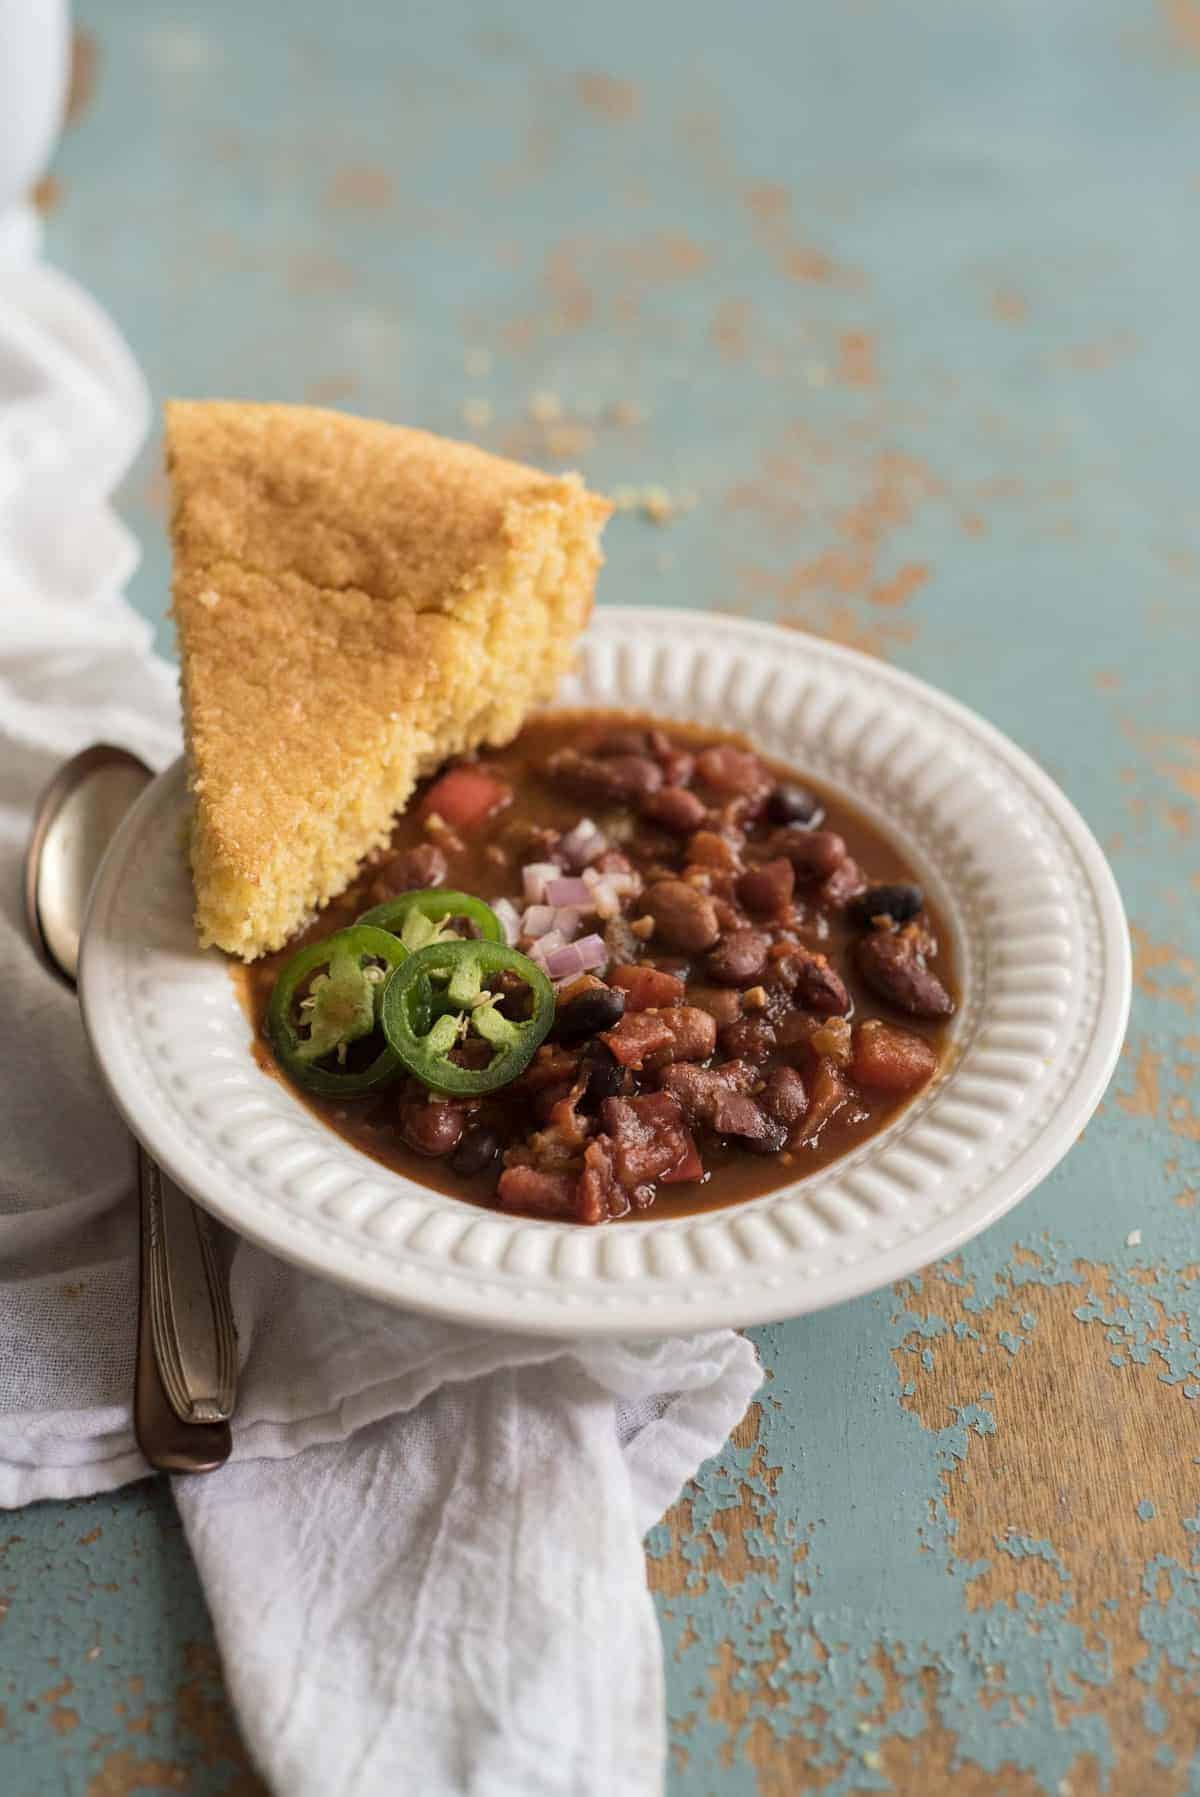 Healthy and flavorful Instant Pot Vegetarian Chili recipe made with a mix of dried beans, vegetables, spices, and a secret ingredient. A healthy, one-pot meatless meal your whole family will love.